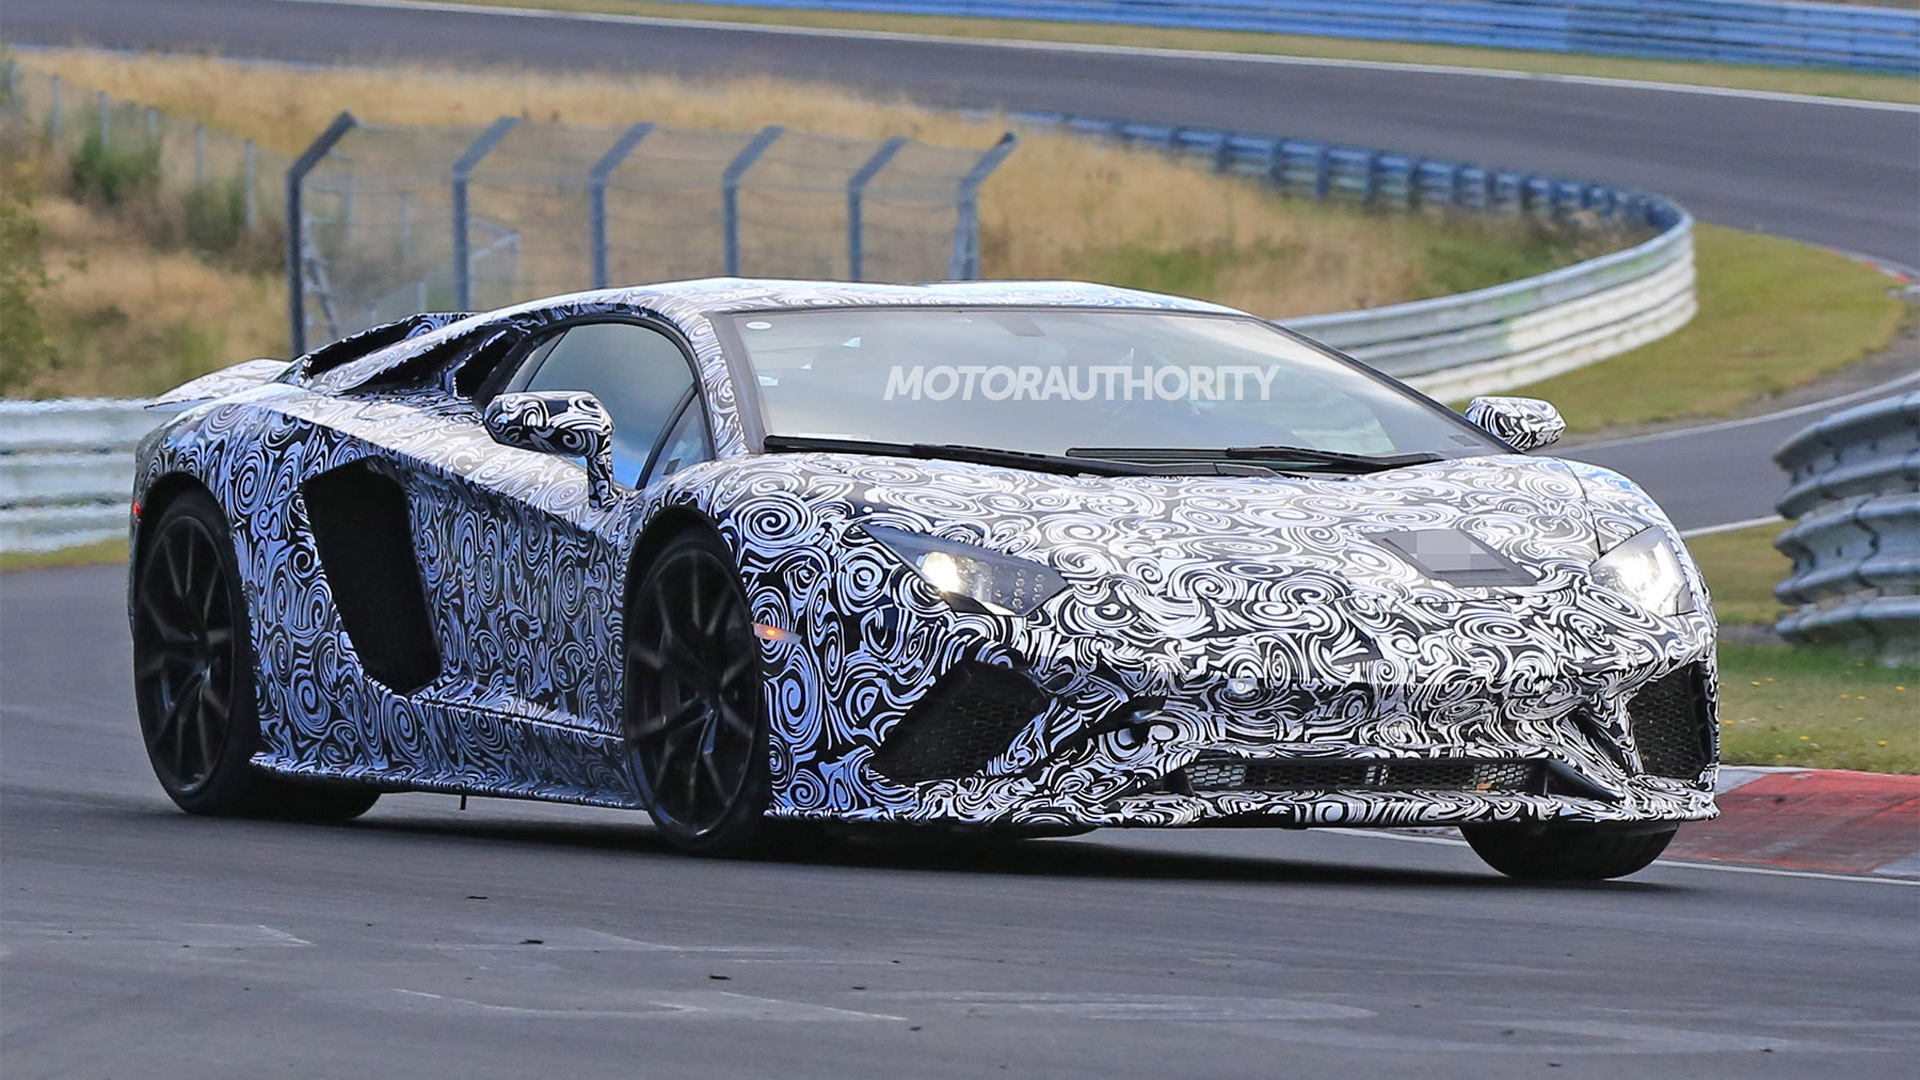 2018 Lamborghini Aventador Spy Shots And Video